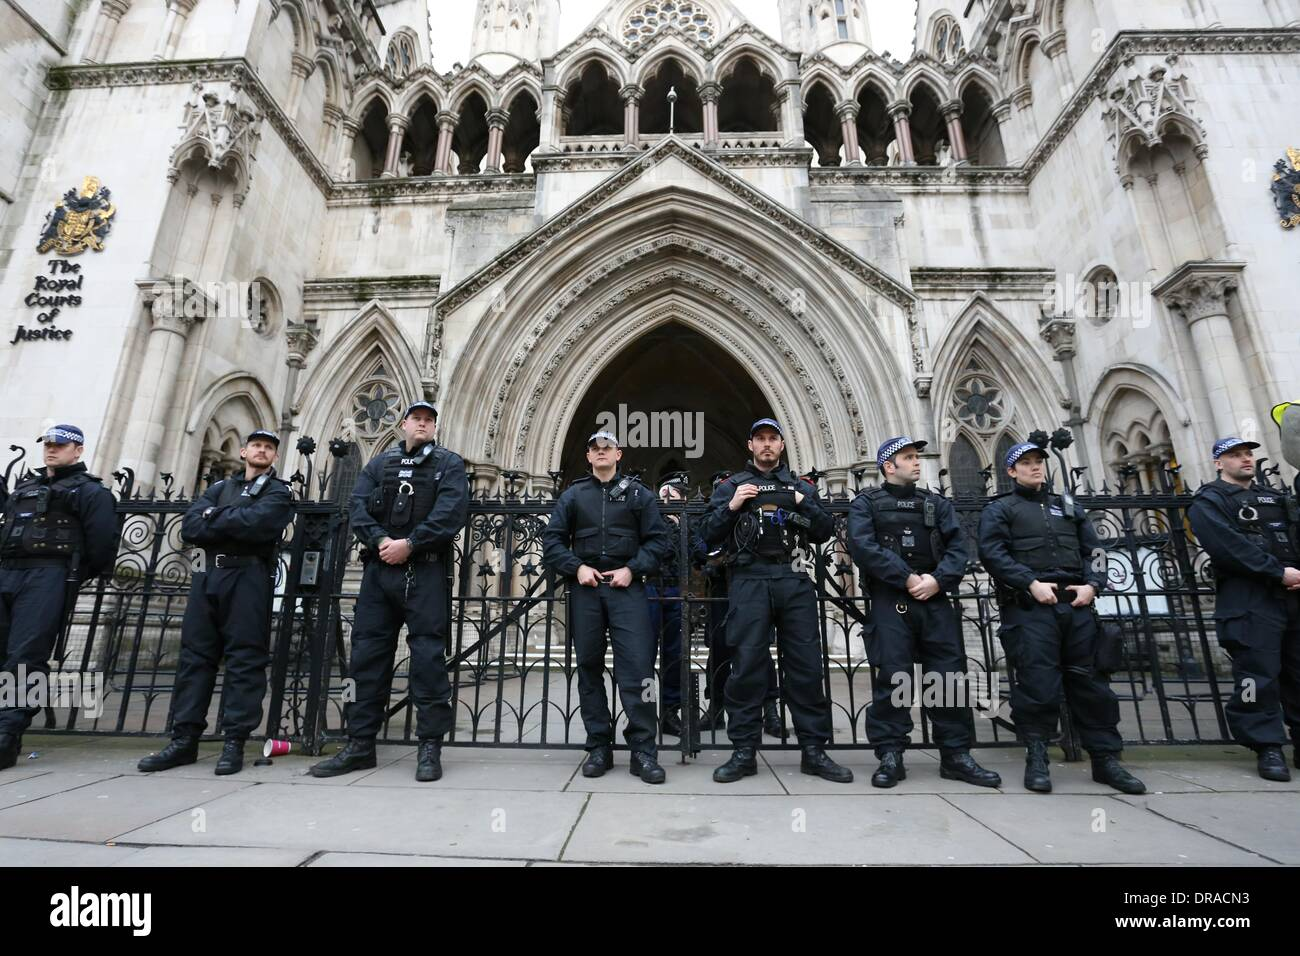 Police stand guard outside the Royal Courts of Justice. Students continued their campaign in support of lecturers and support staff pay and pensions as well as Police violence at recent student occupations in London. Around 150 students continued their campaign in support of lecturers and support staff pay and pensions as well as Police violence at recent student occupations. Demonstrators marched from the University of London Union (ULU) to the Royal Courts of Justice in central London. - Stock Image